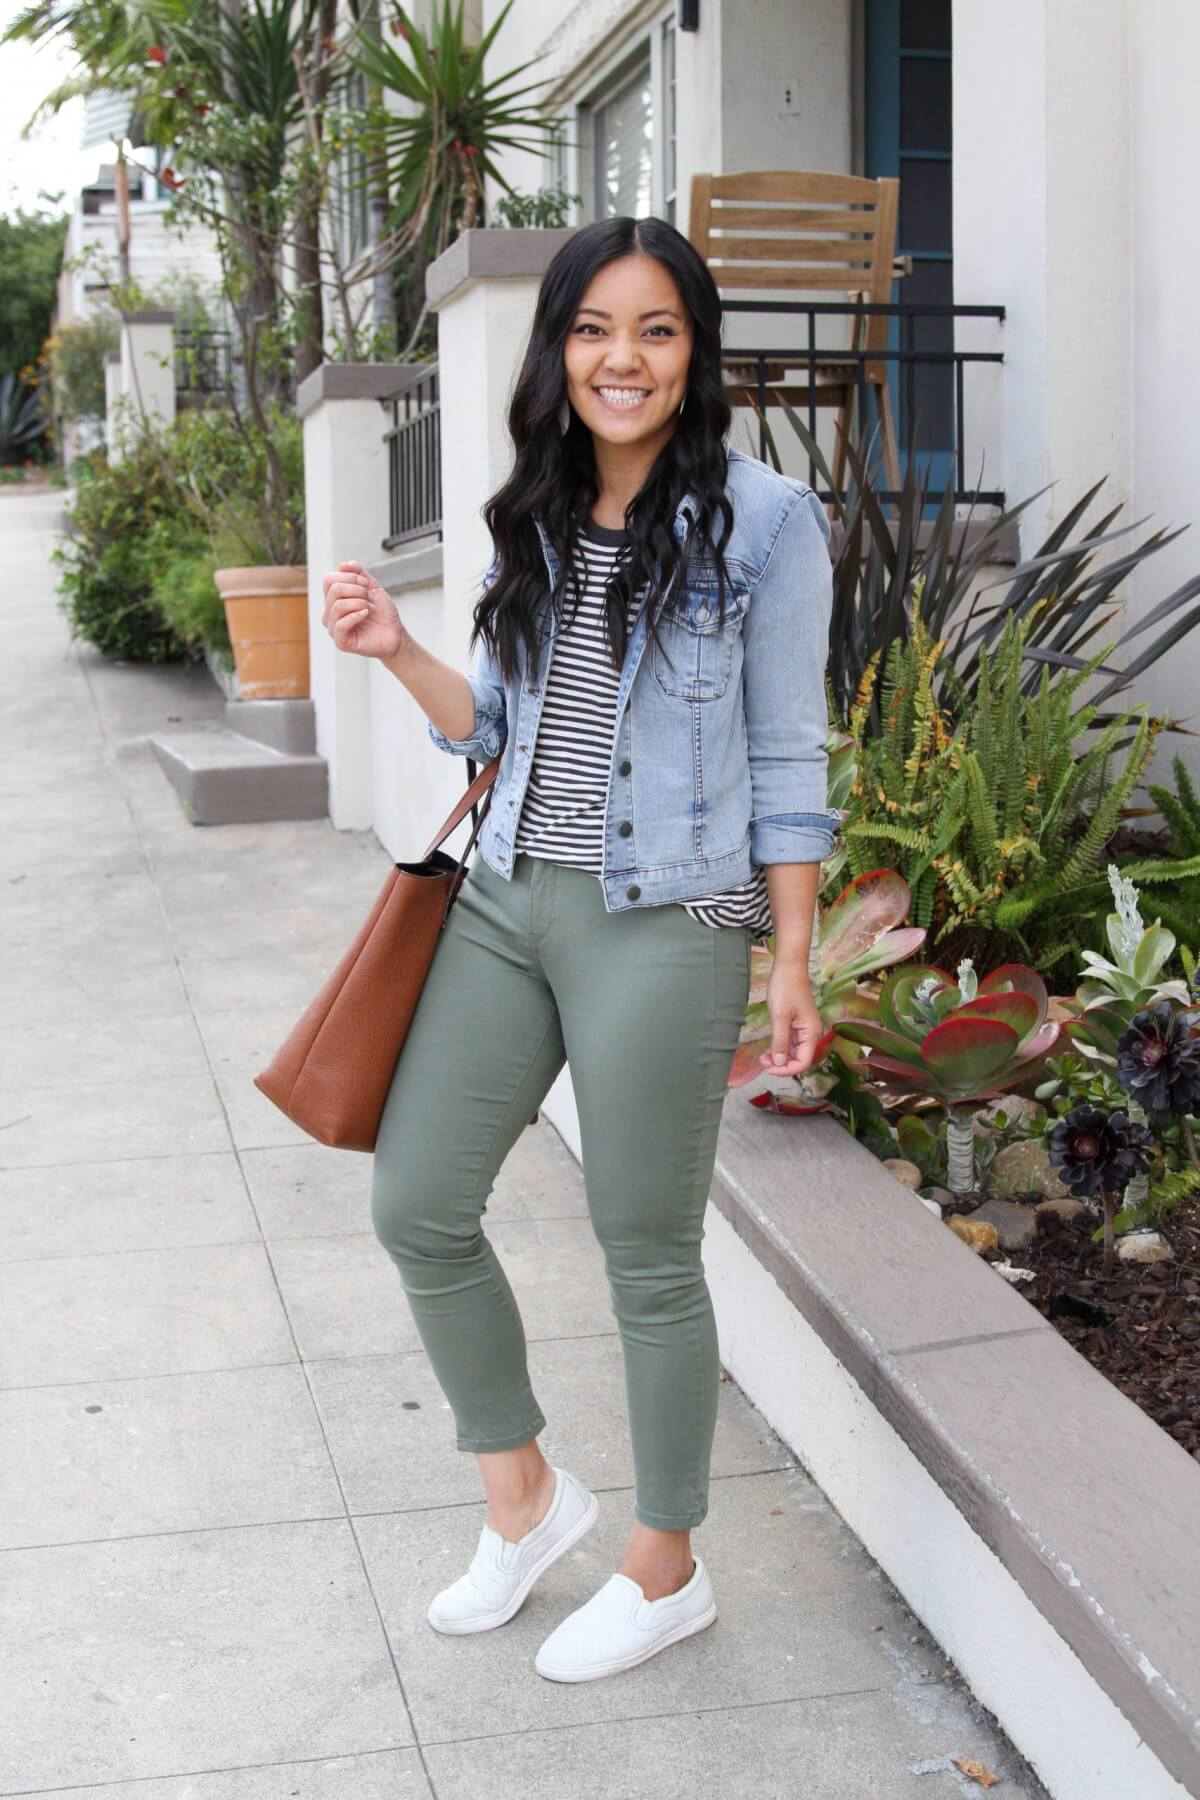 Casual Outfit: denim jacket + black and white striped tee + olive pants + white slip-on sneakers + tan tote